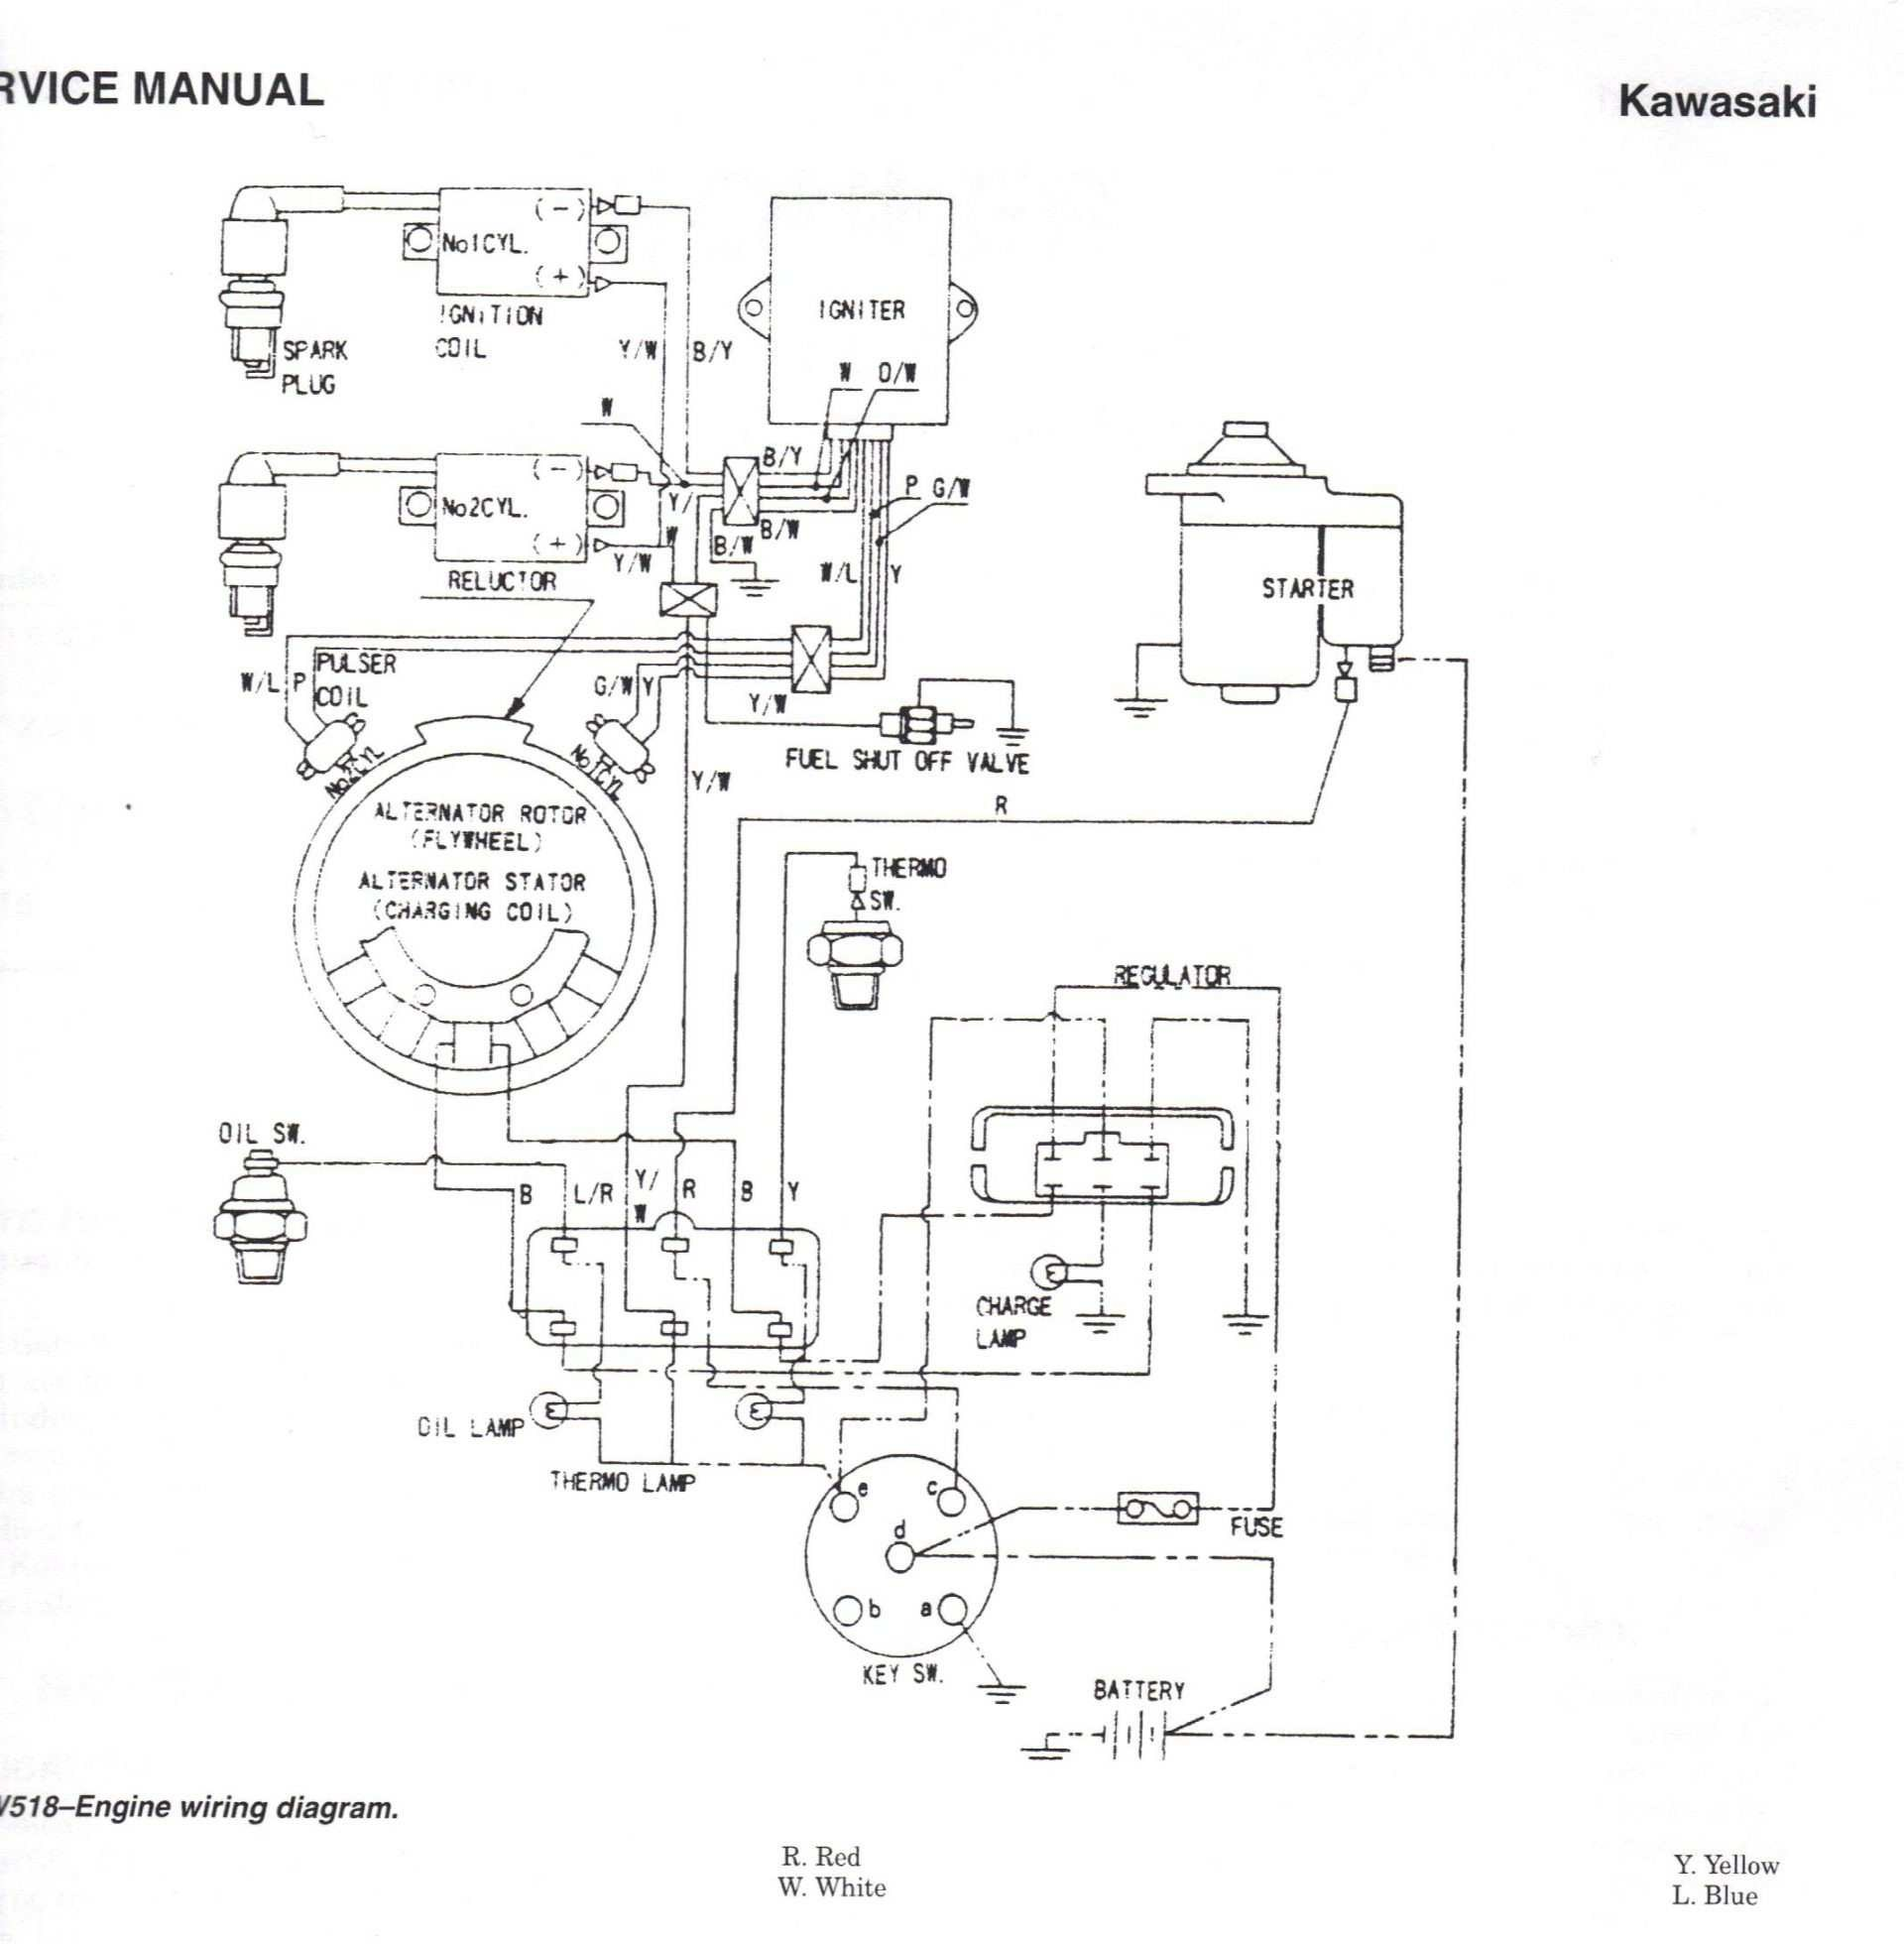 Ford Tractor Ignition Switch Wiring Diagram Elegant ford 8n Tractor Troubleshooting Image Collections Free